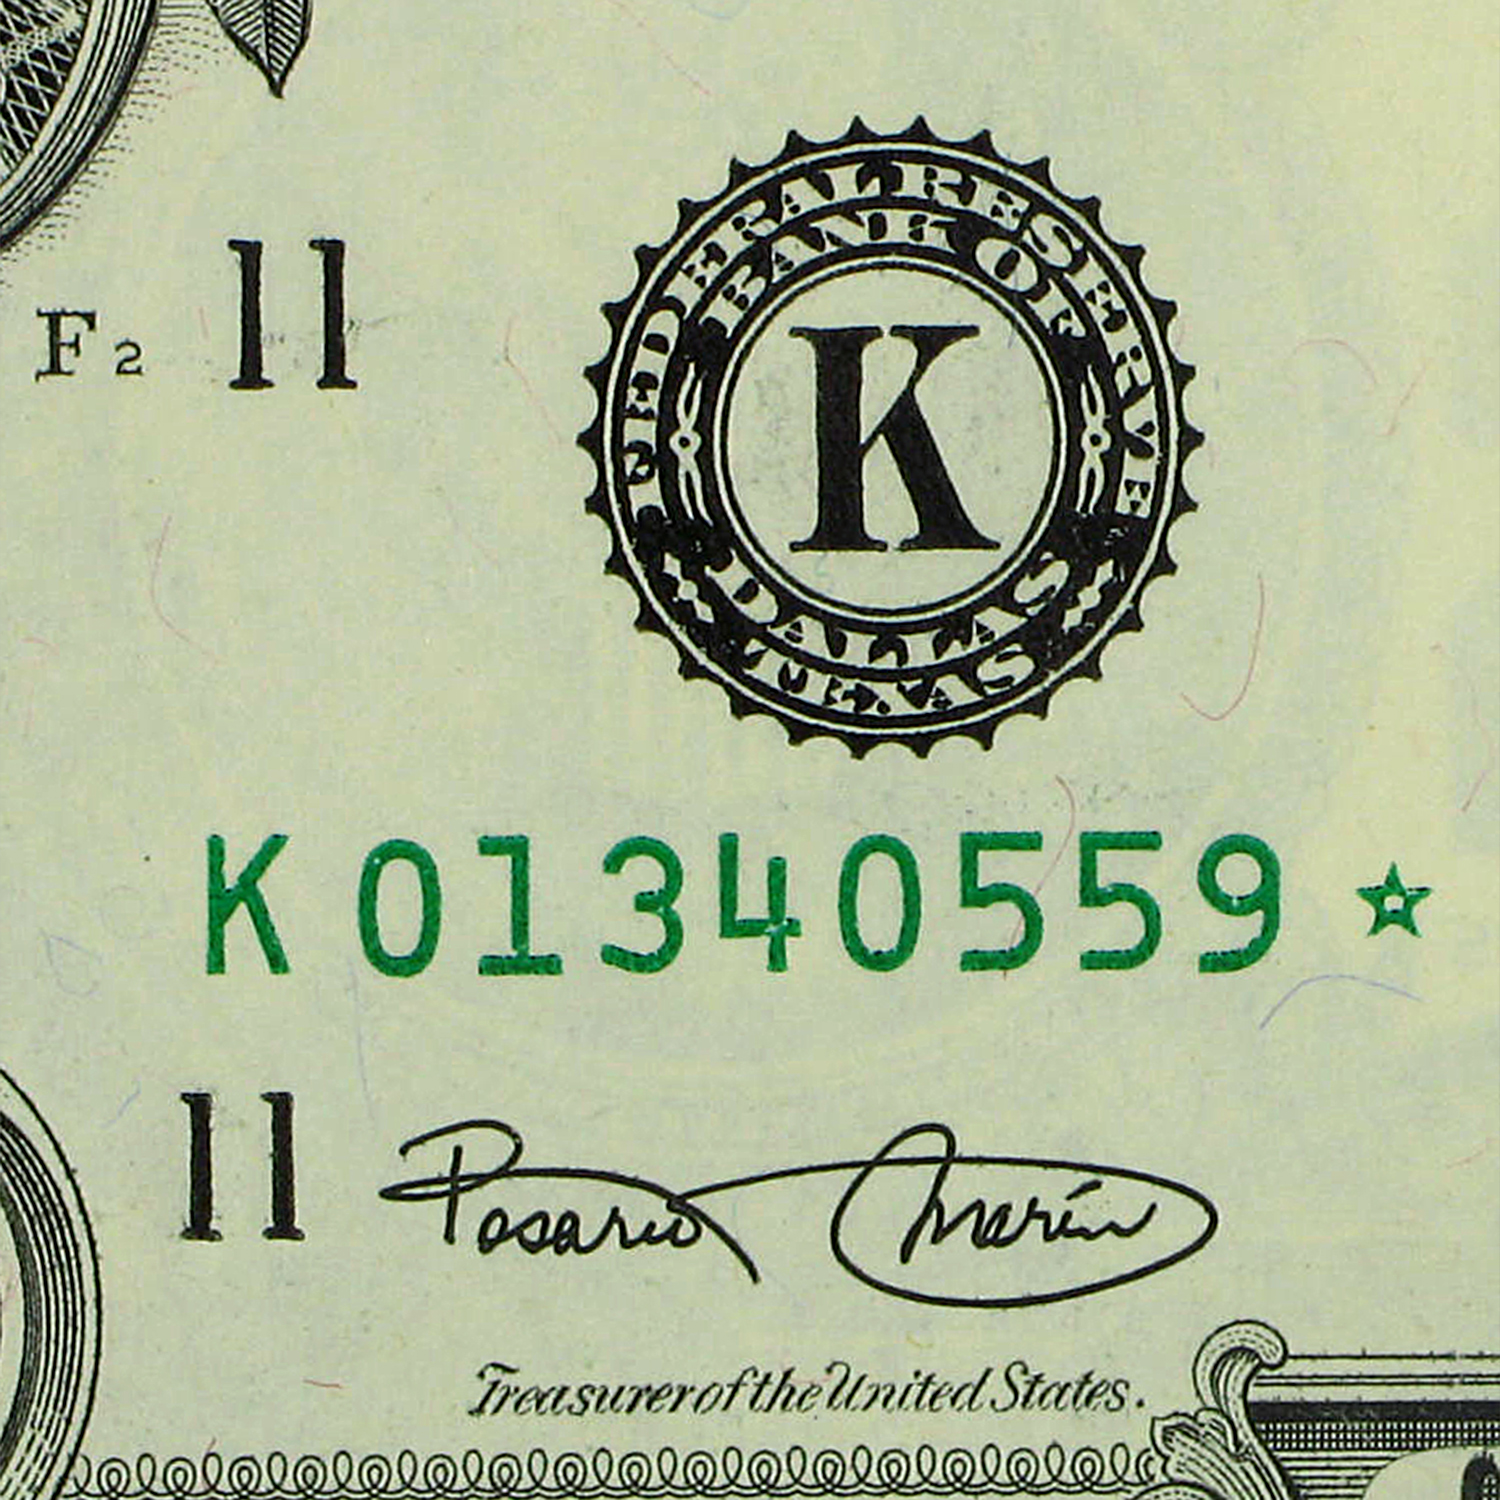 2003* (K-Dallas) $1.00 FRN CU (Star Note)